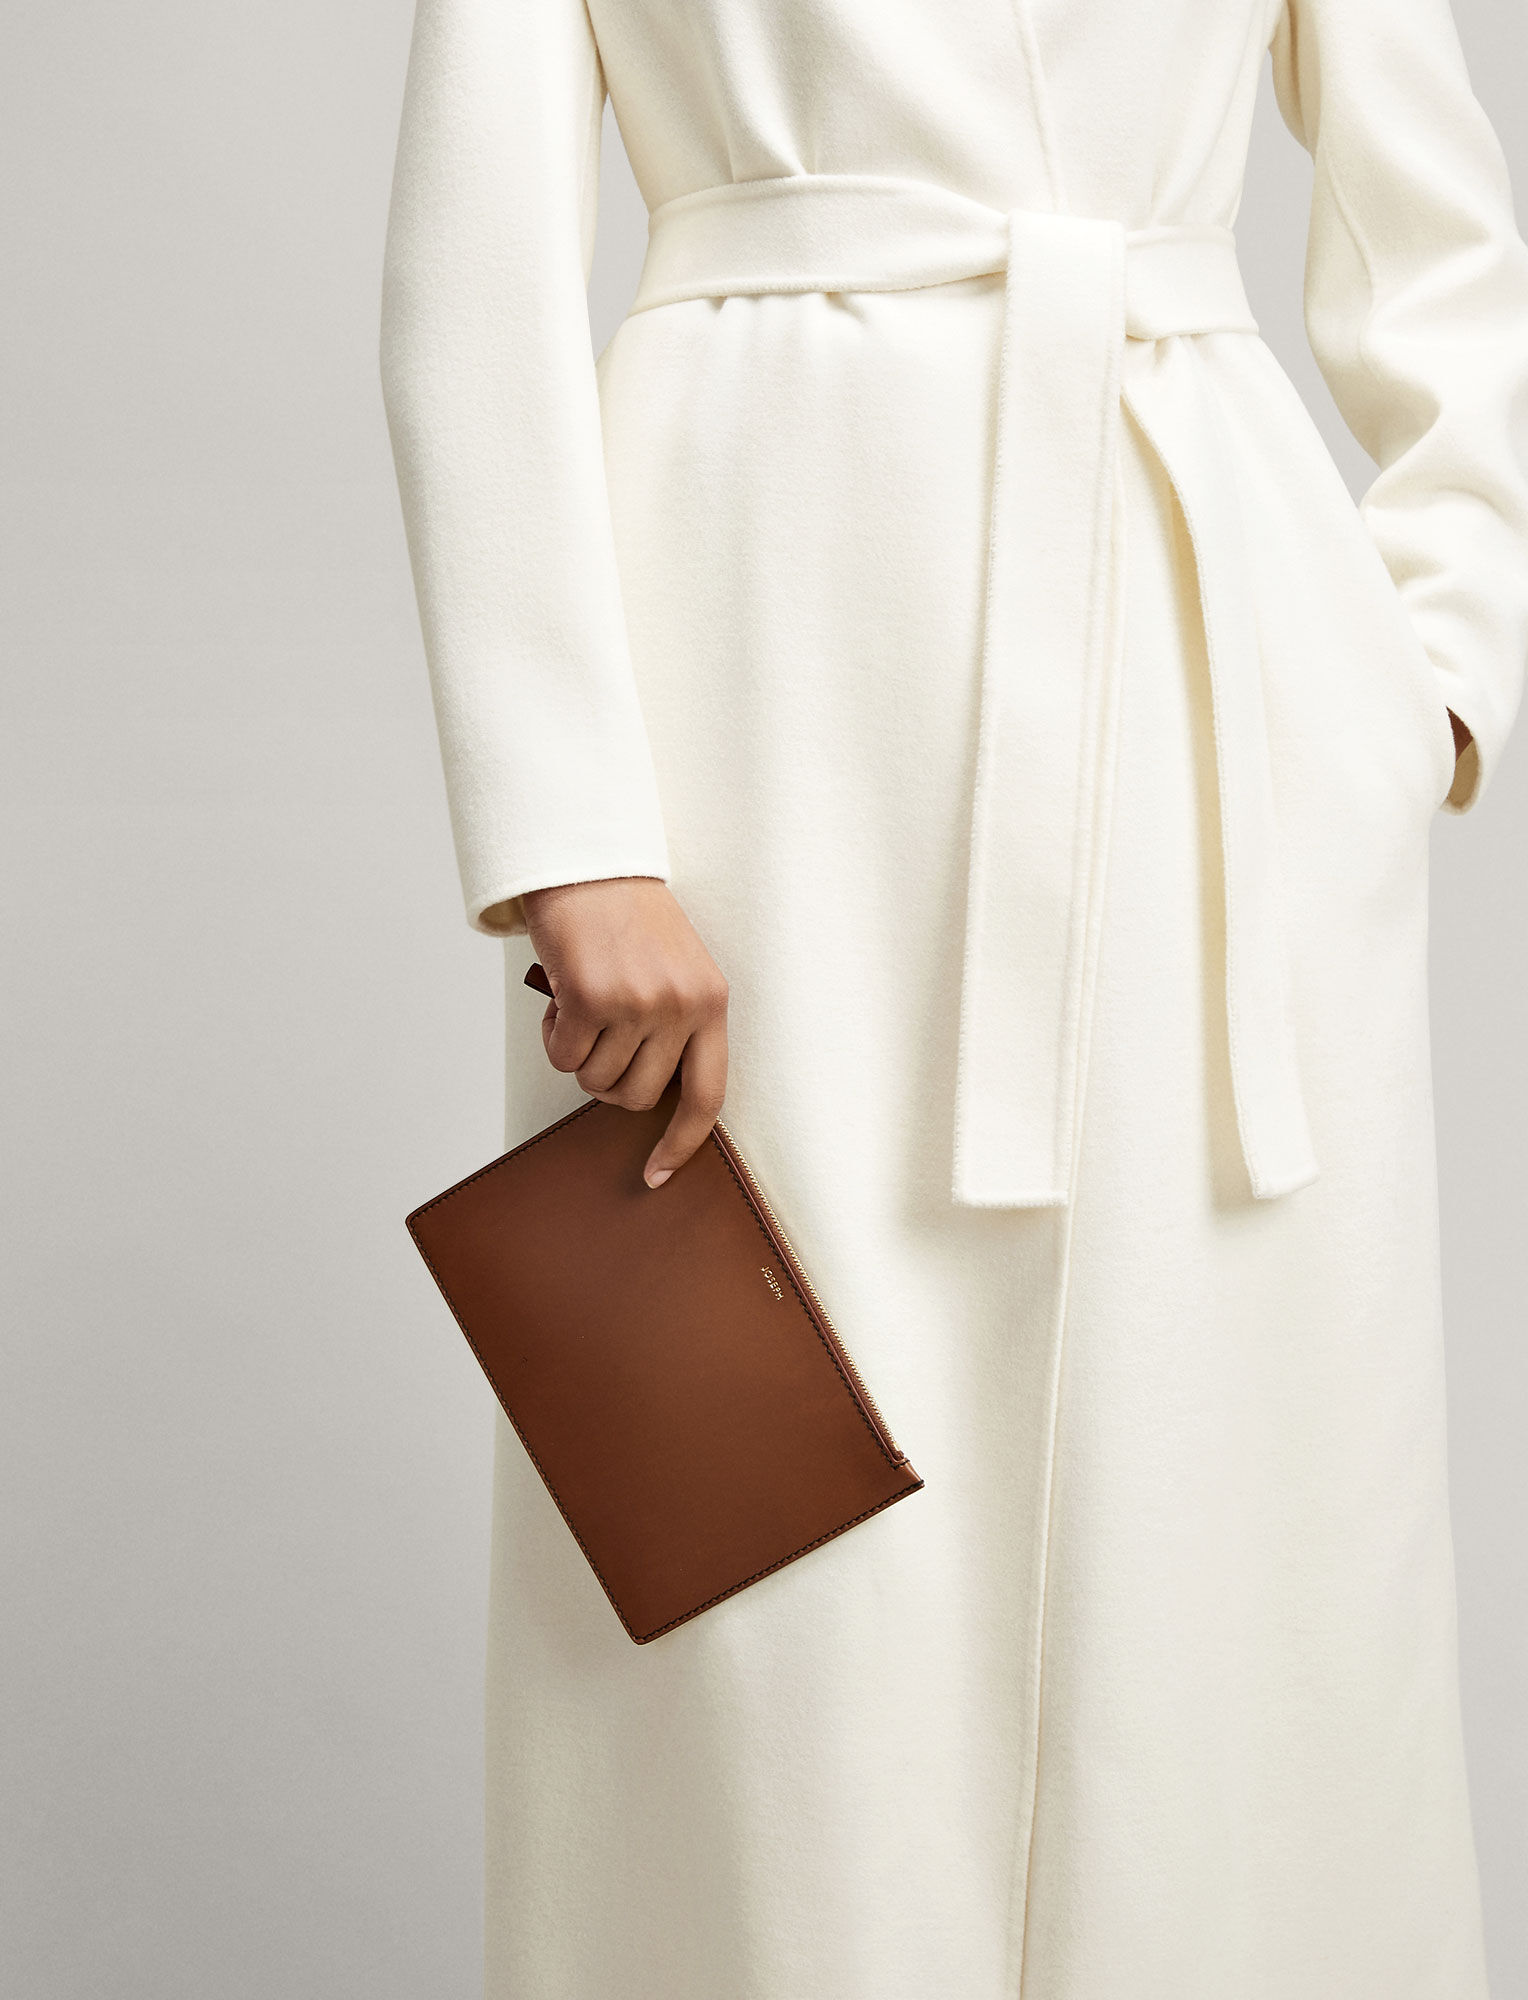 Joseph, Calf Leather Large Pouch, in SADDLE